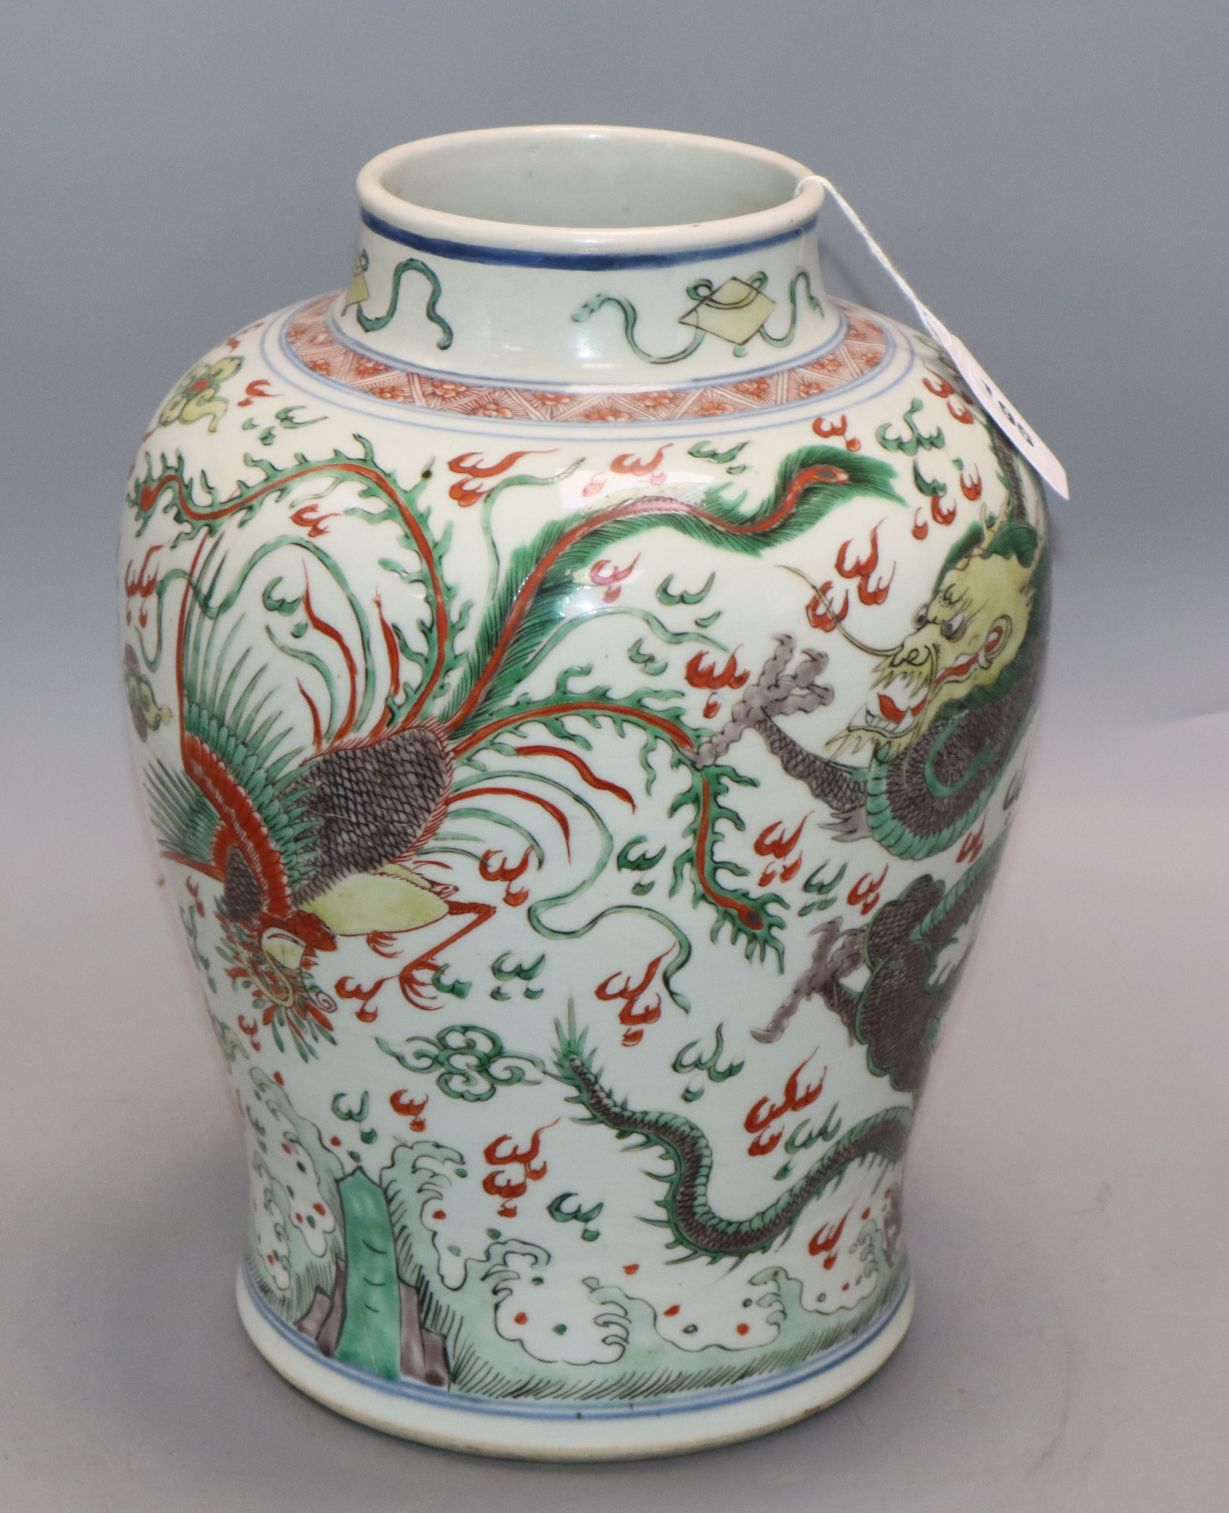 Lot 195 - A large Chinese Kangxi period wucai vase